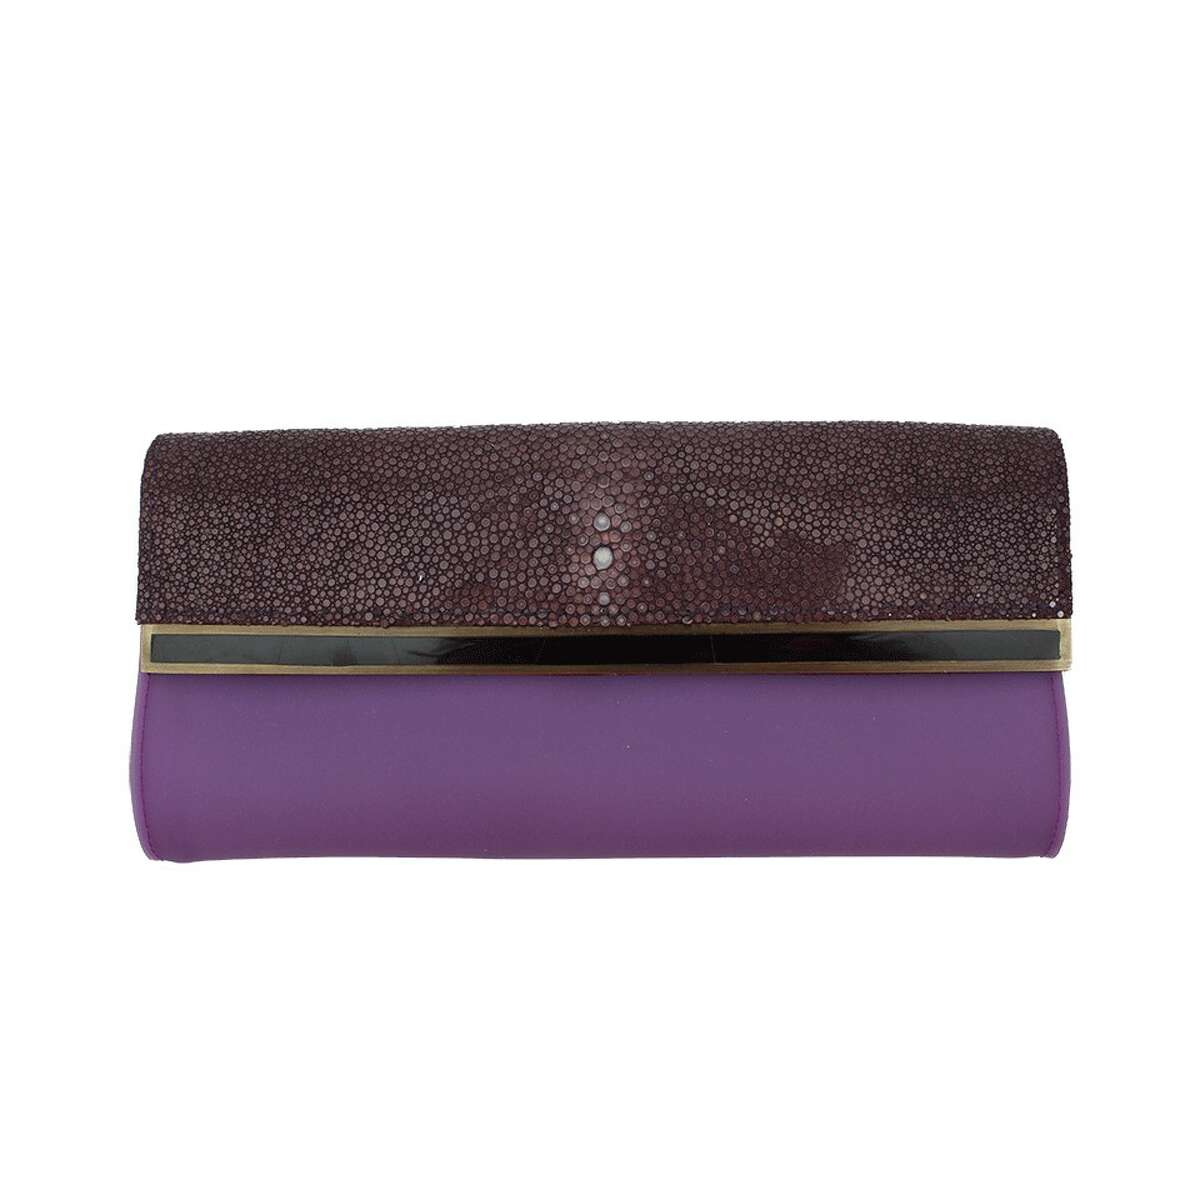 ABOVE THE FOLD Parisian designers R&Y Augousti specialize in exotic materials, such as the purple stingray leather on this sleek fold-over envelope clutch; $515 atfarfetch.com.